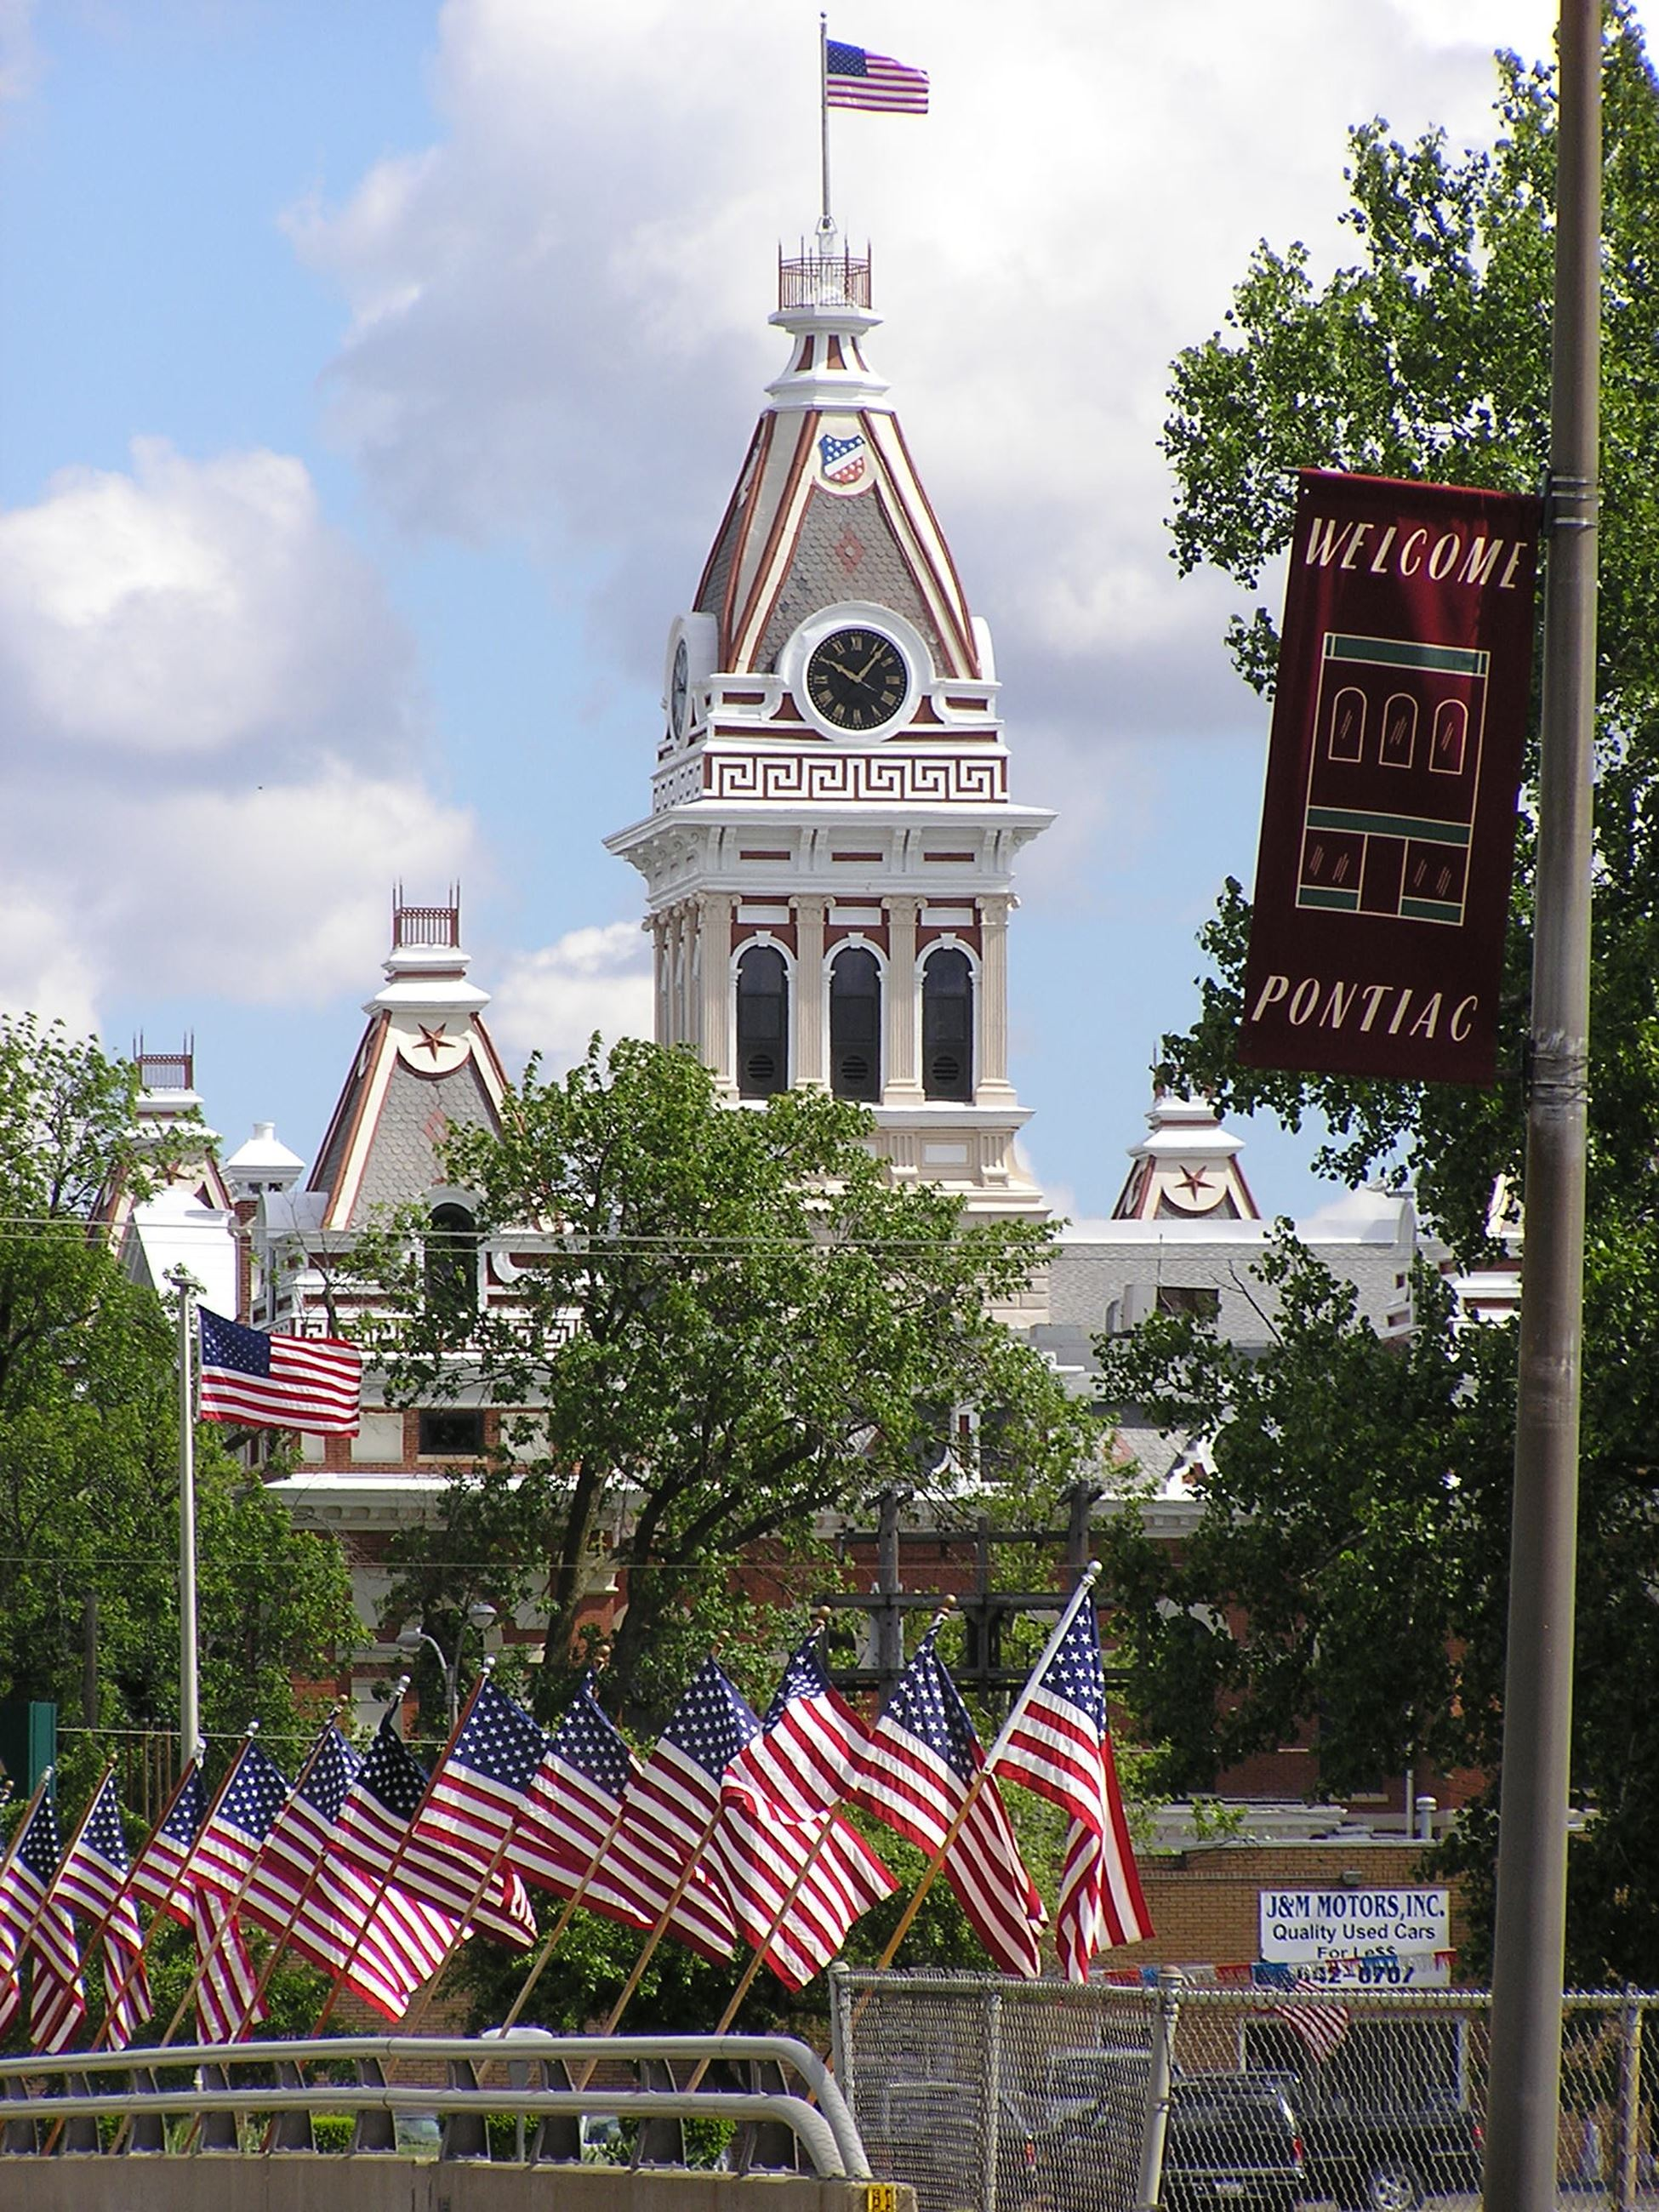 Courthouse and flags